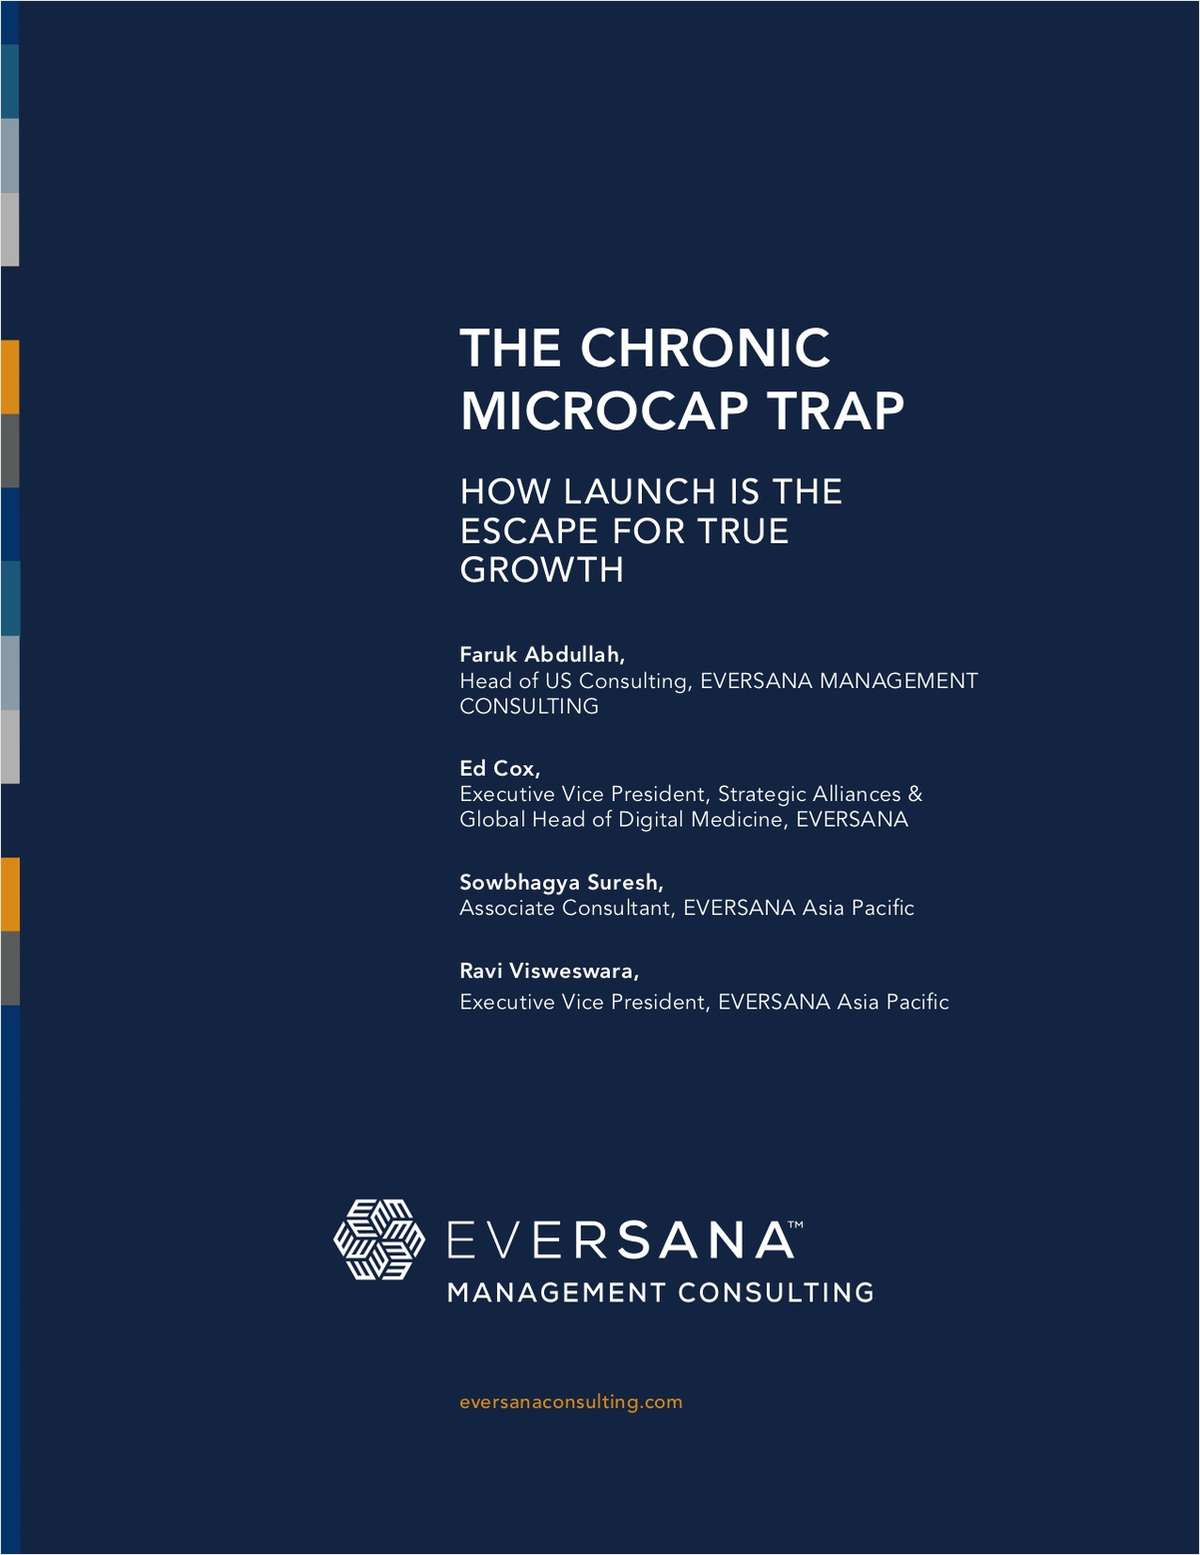 The Chronic Microcap Trap: How Launch Is the Escape for True Growth